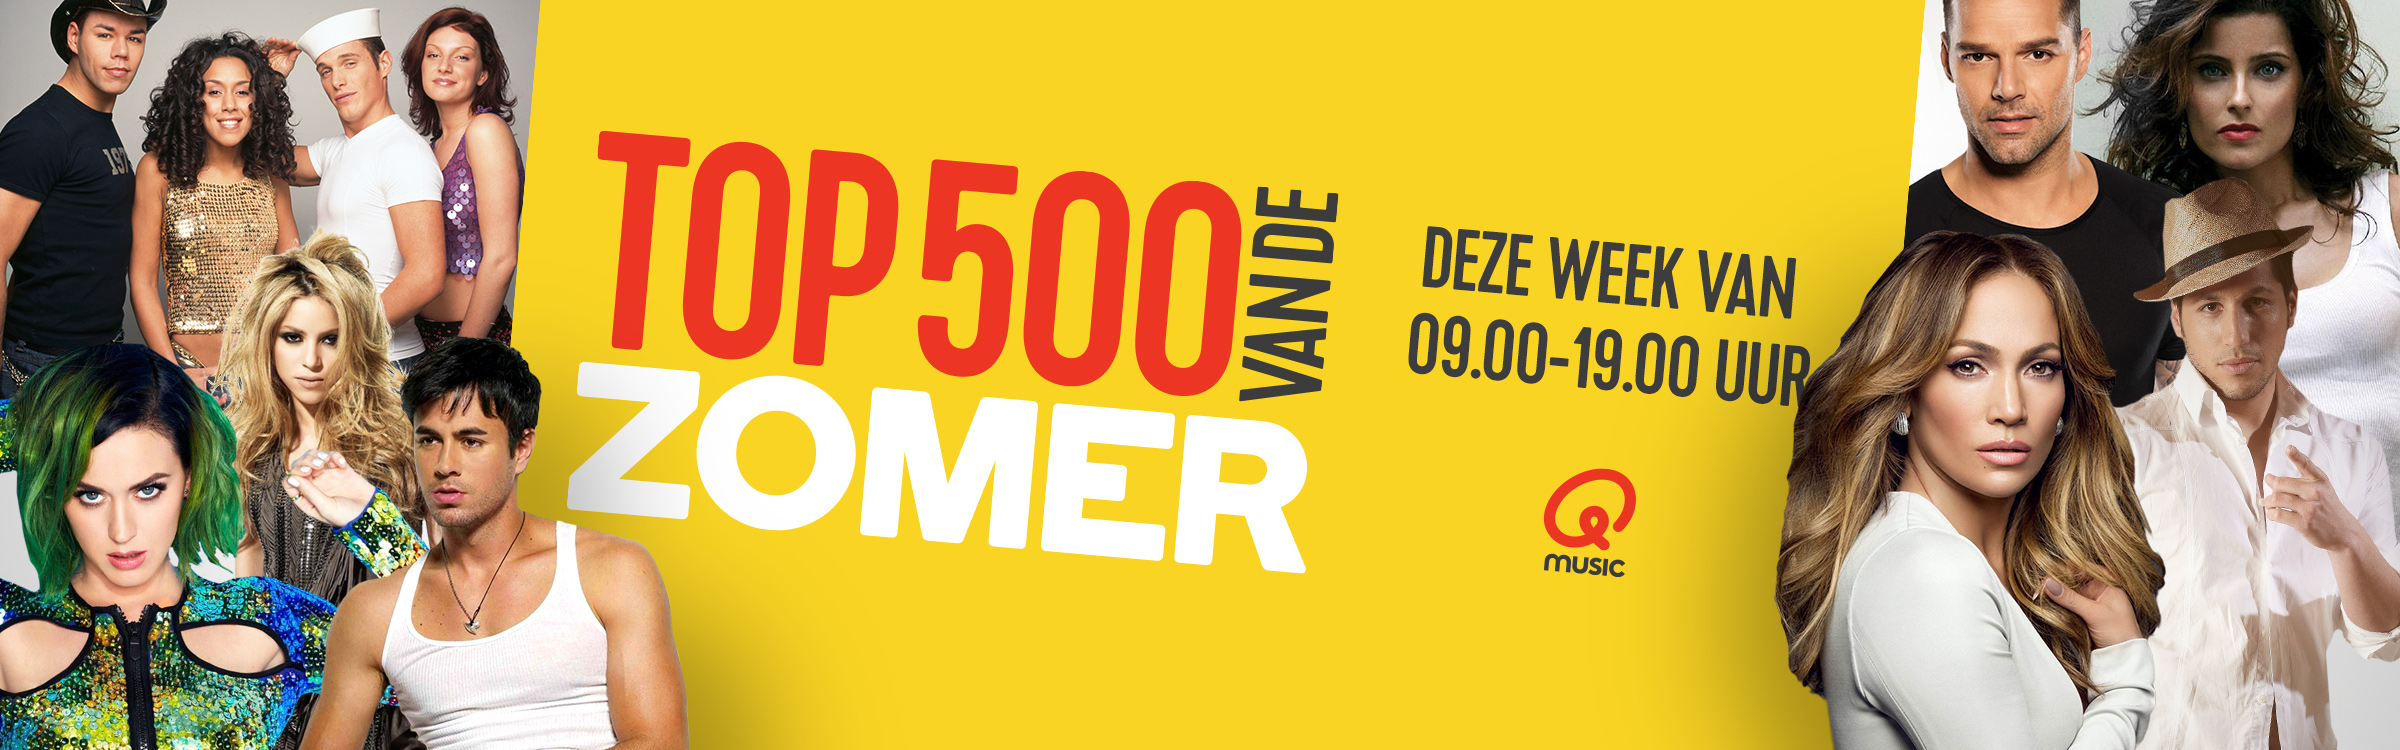 Qmusic actionheader top500zomer dezeweek